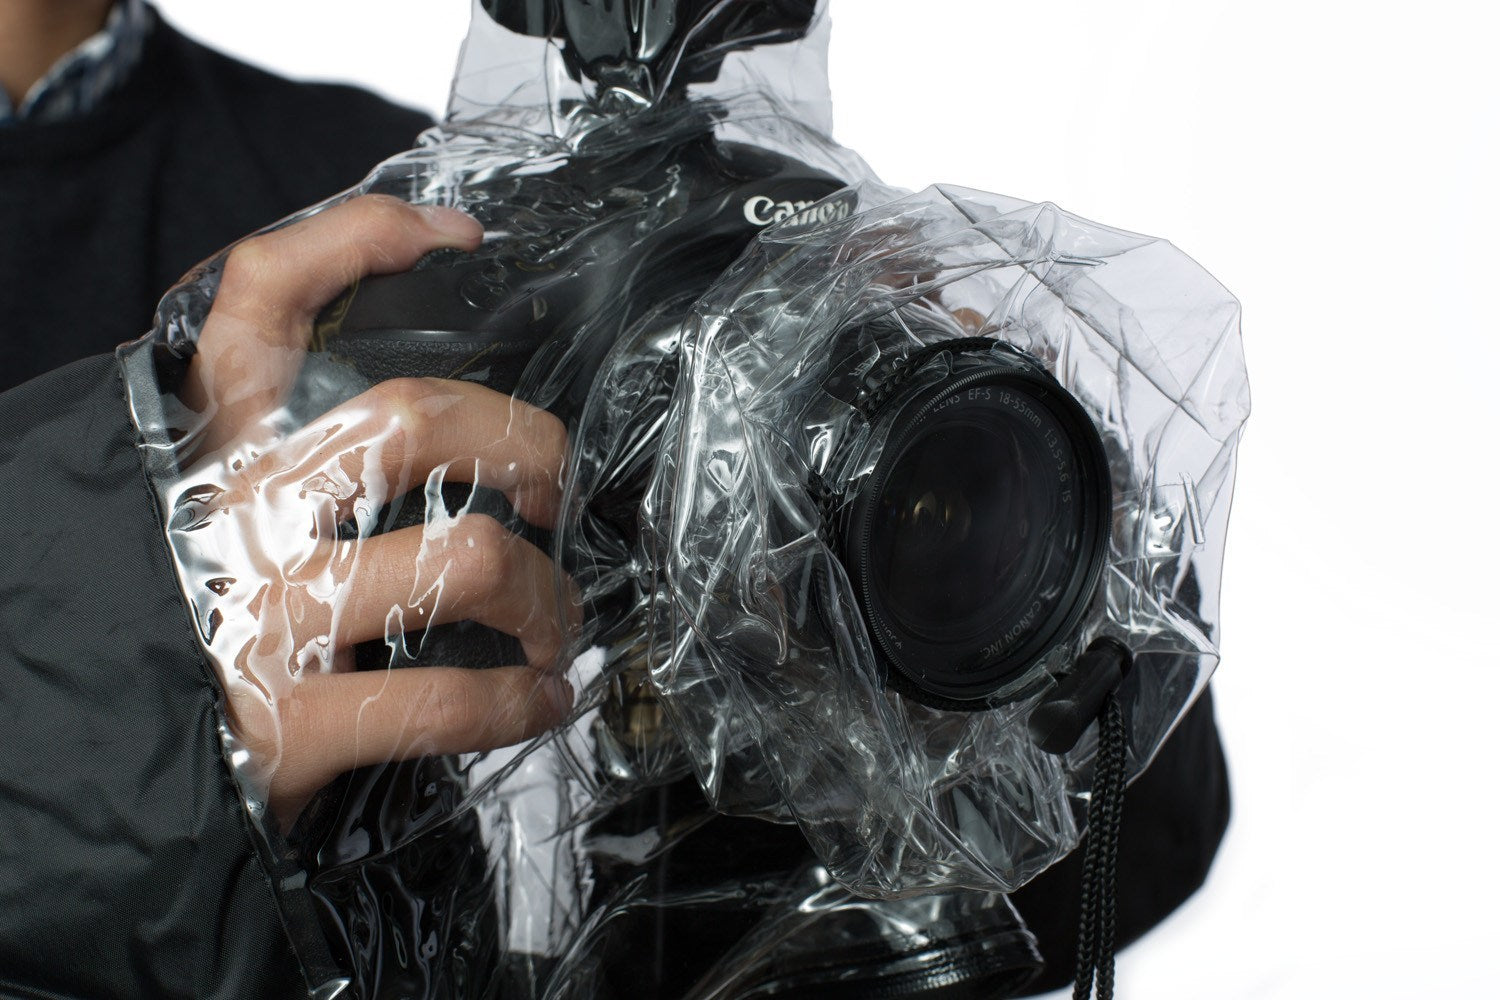 StudioPRO Professional Rain Cover for Large DSLR Camera Universal Fit -  - 4